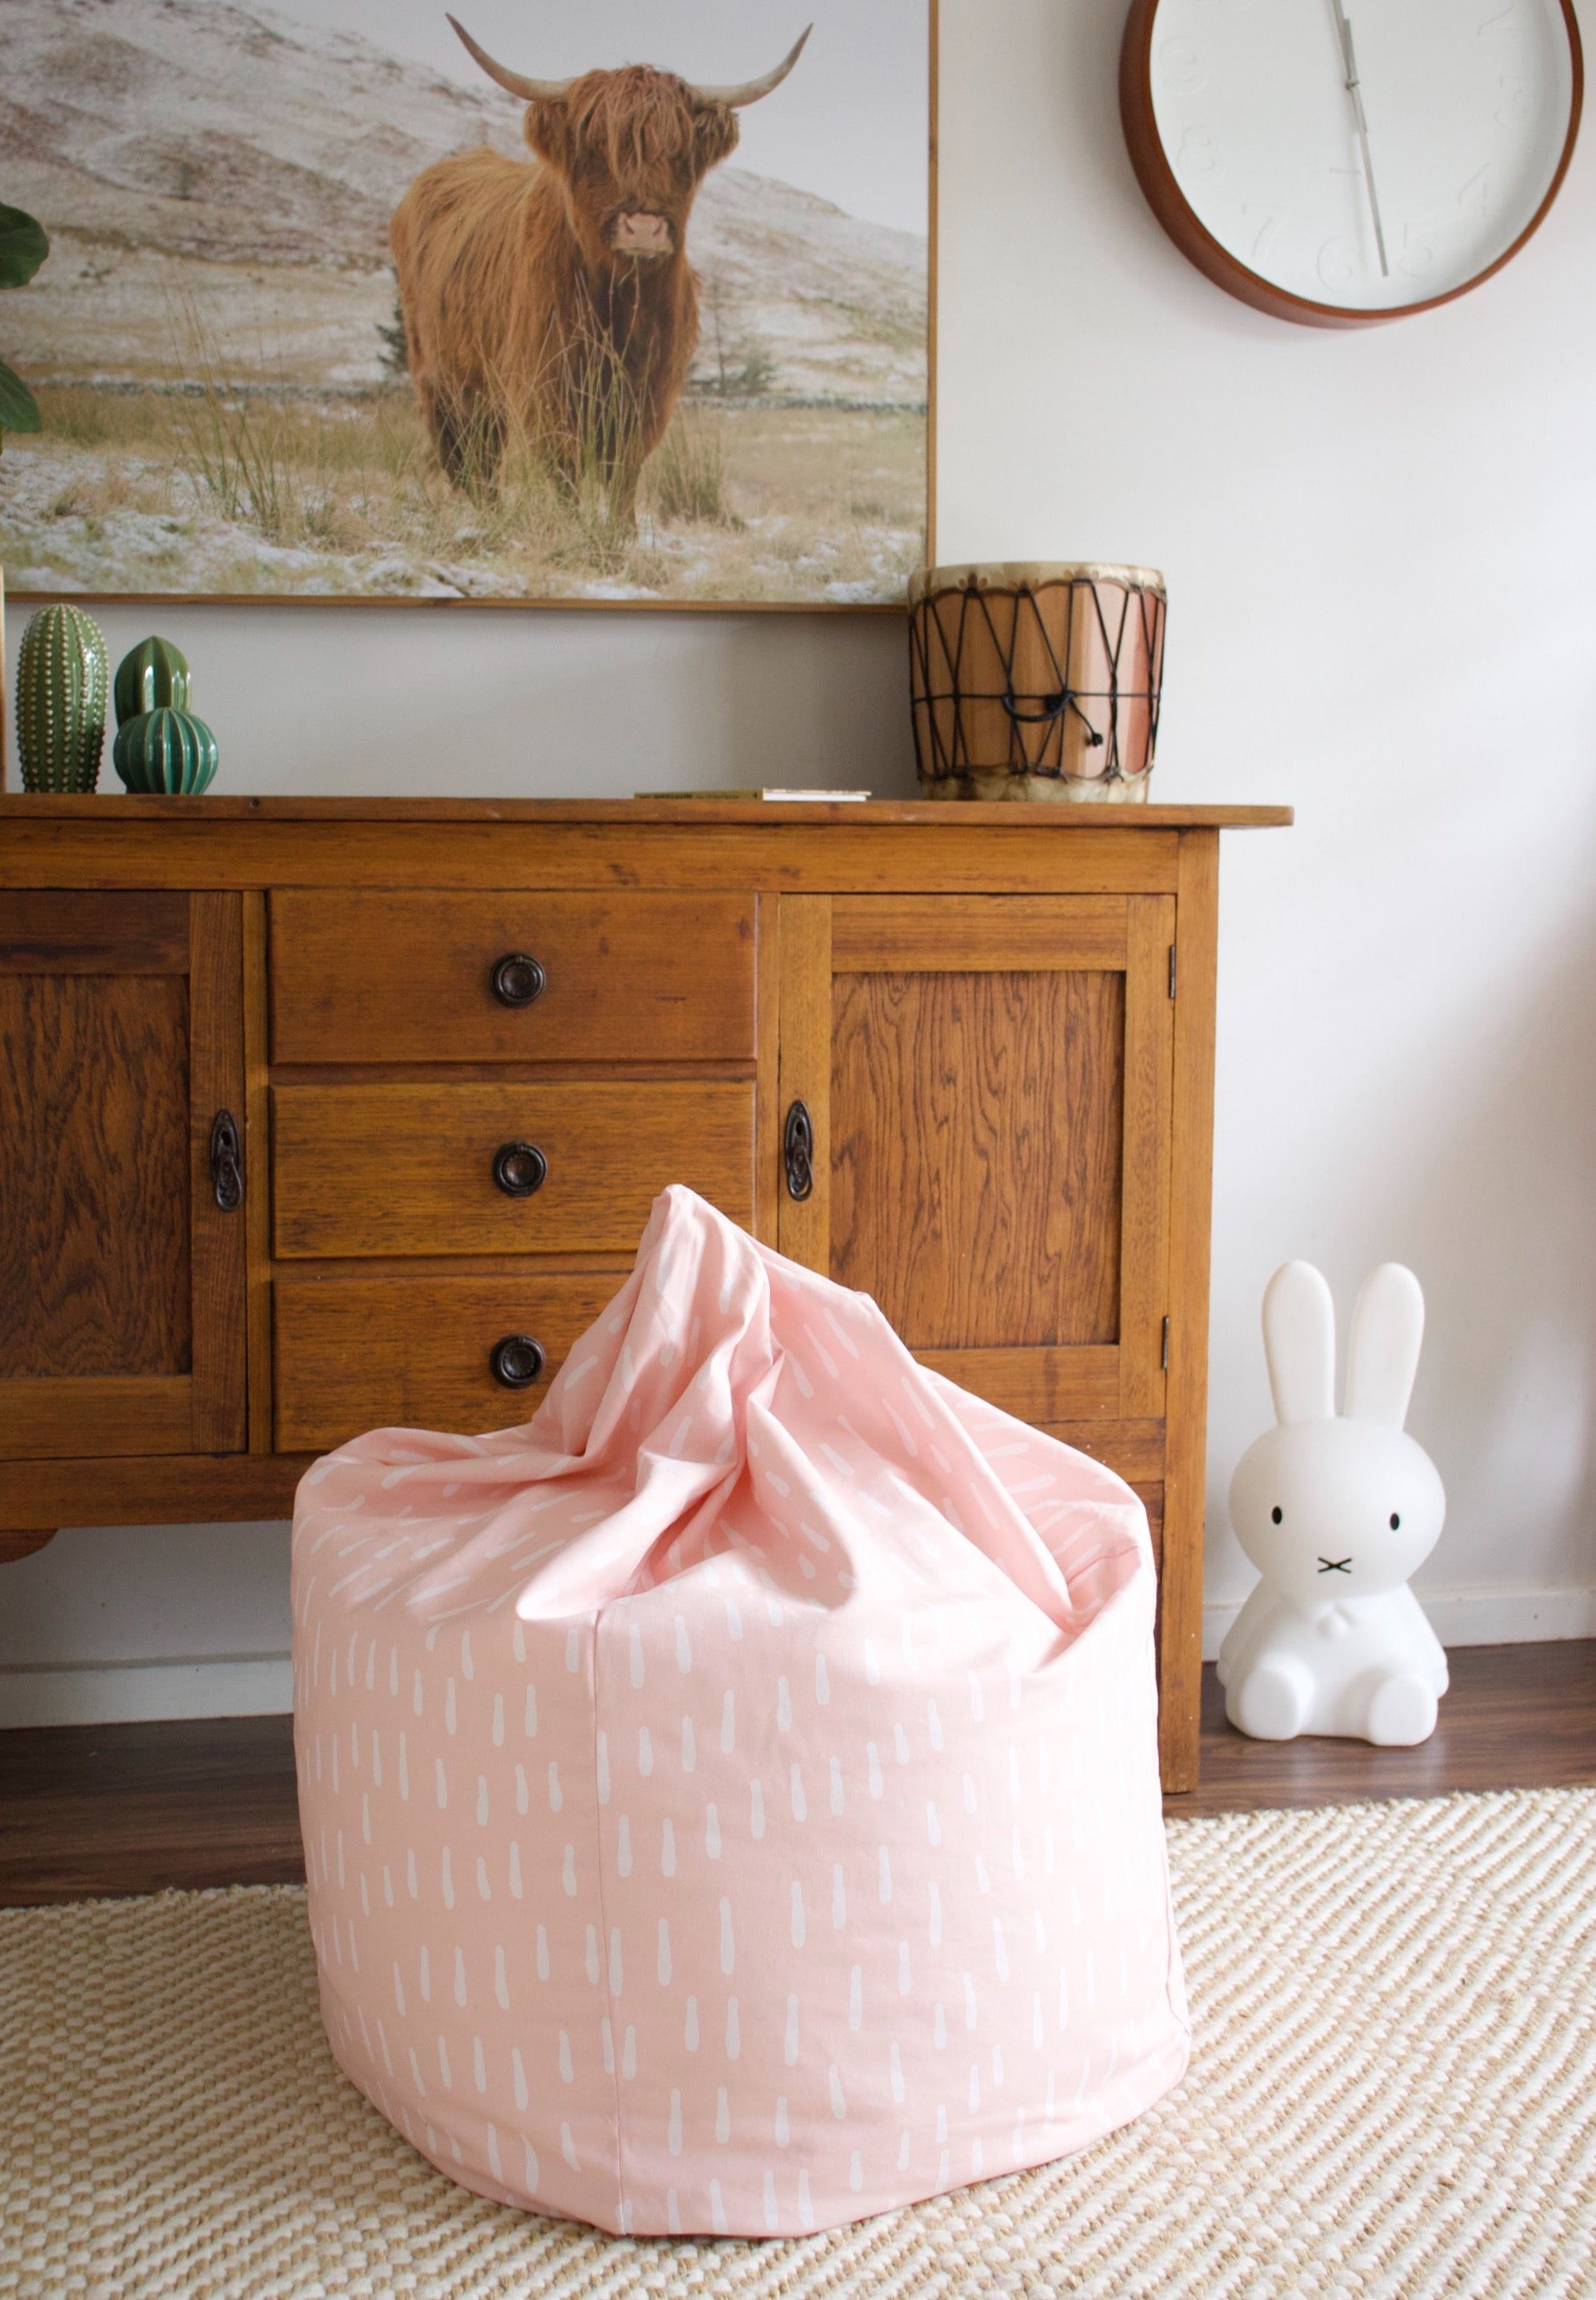 Raindrops Bean Bag - Pink